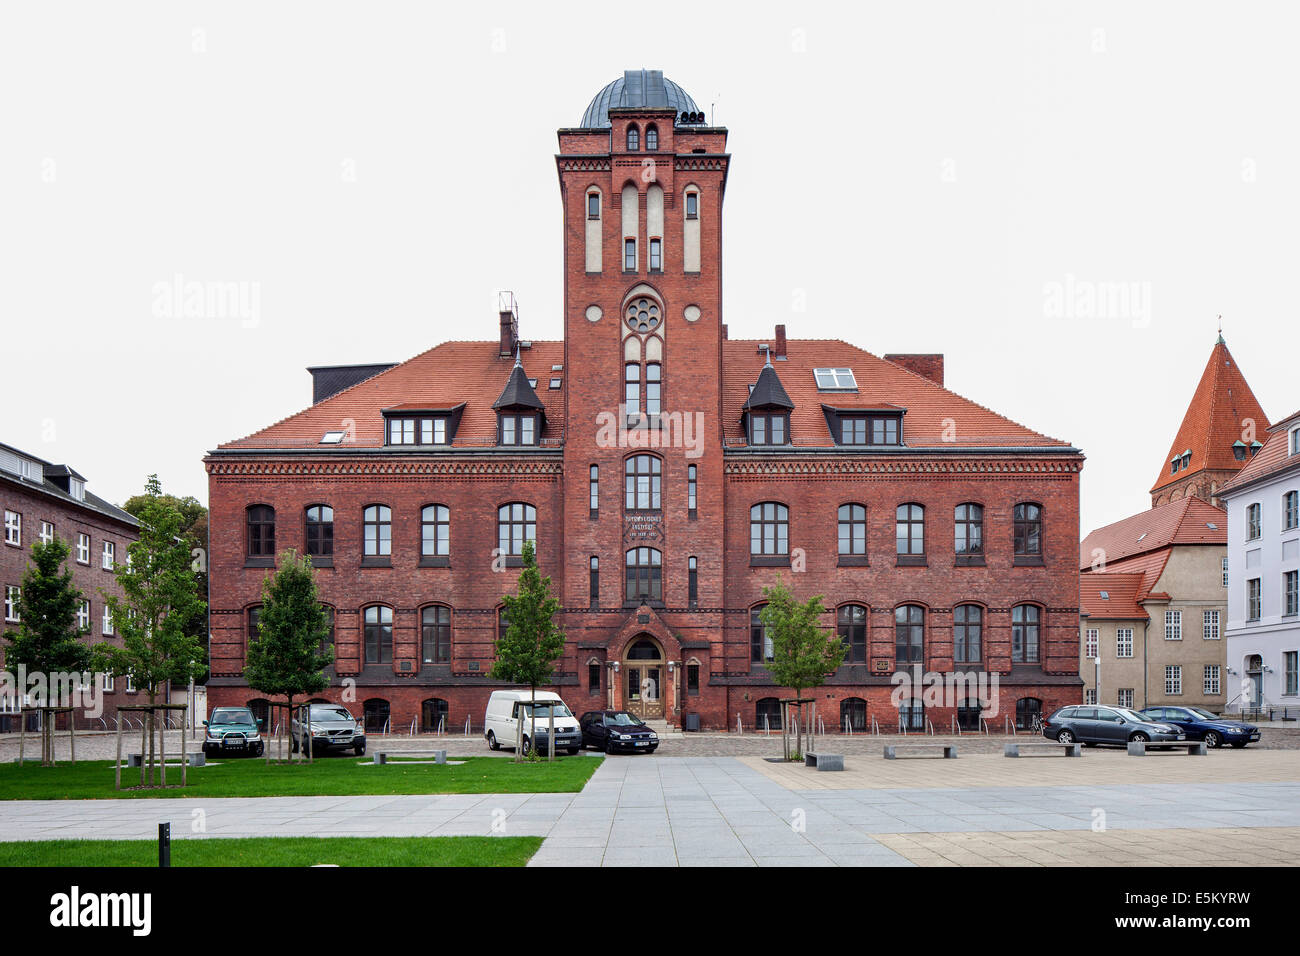 Institute of Physics, University of Greifswald, Hanseatic City of Greifswald, Mecklenburg-Western Pomerania, Germany - Stock Image